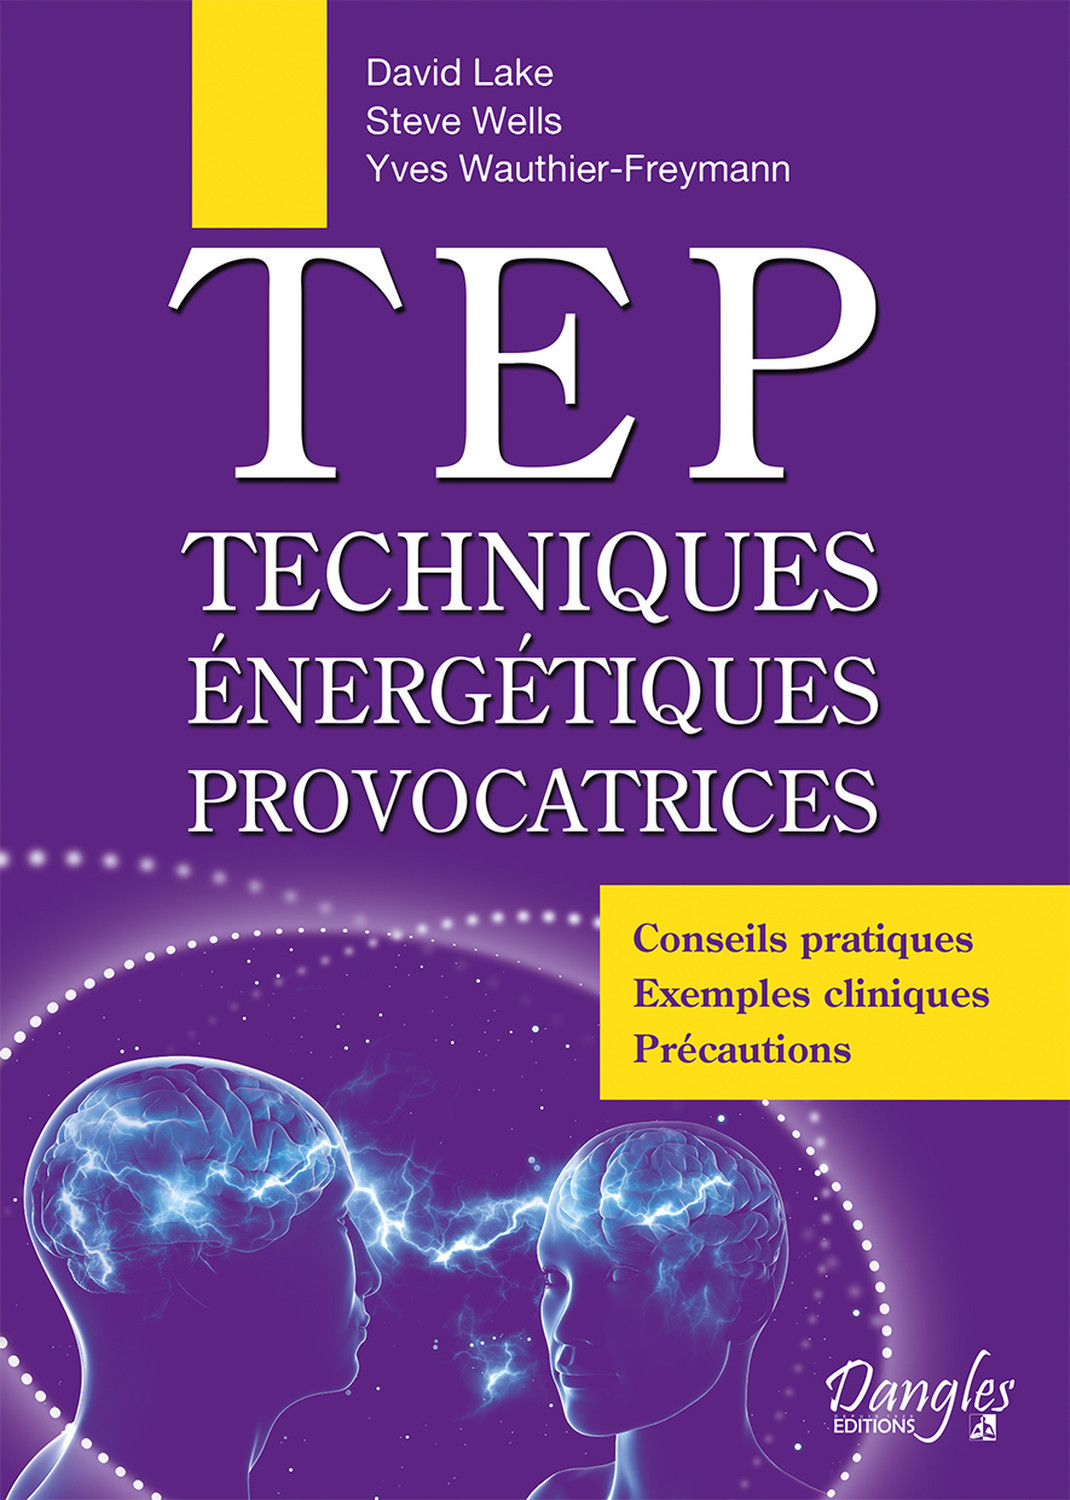 TEP TECHNIQUES ENERGETIQUES PROVOCATRICES